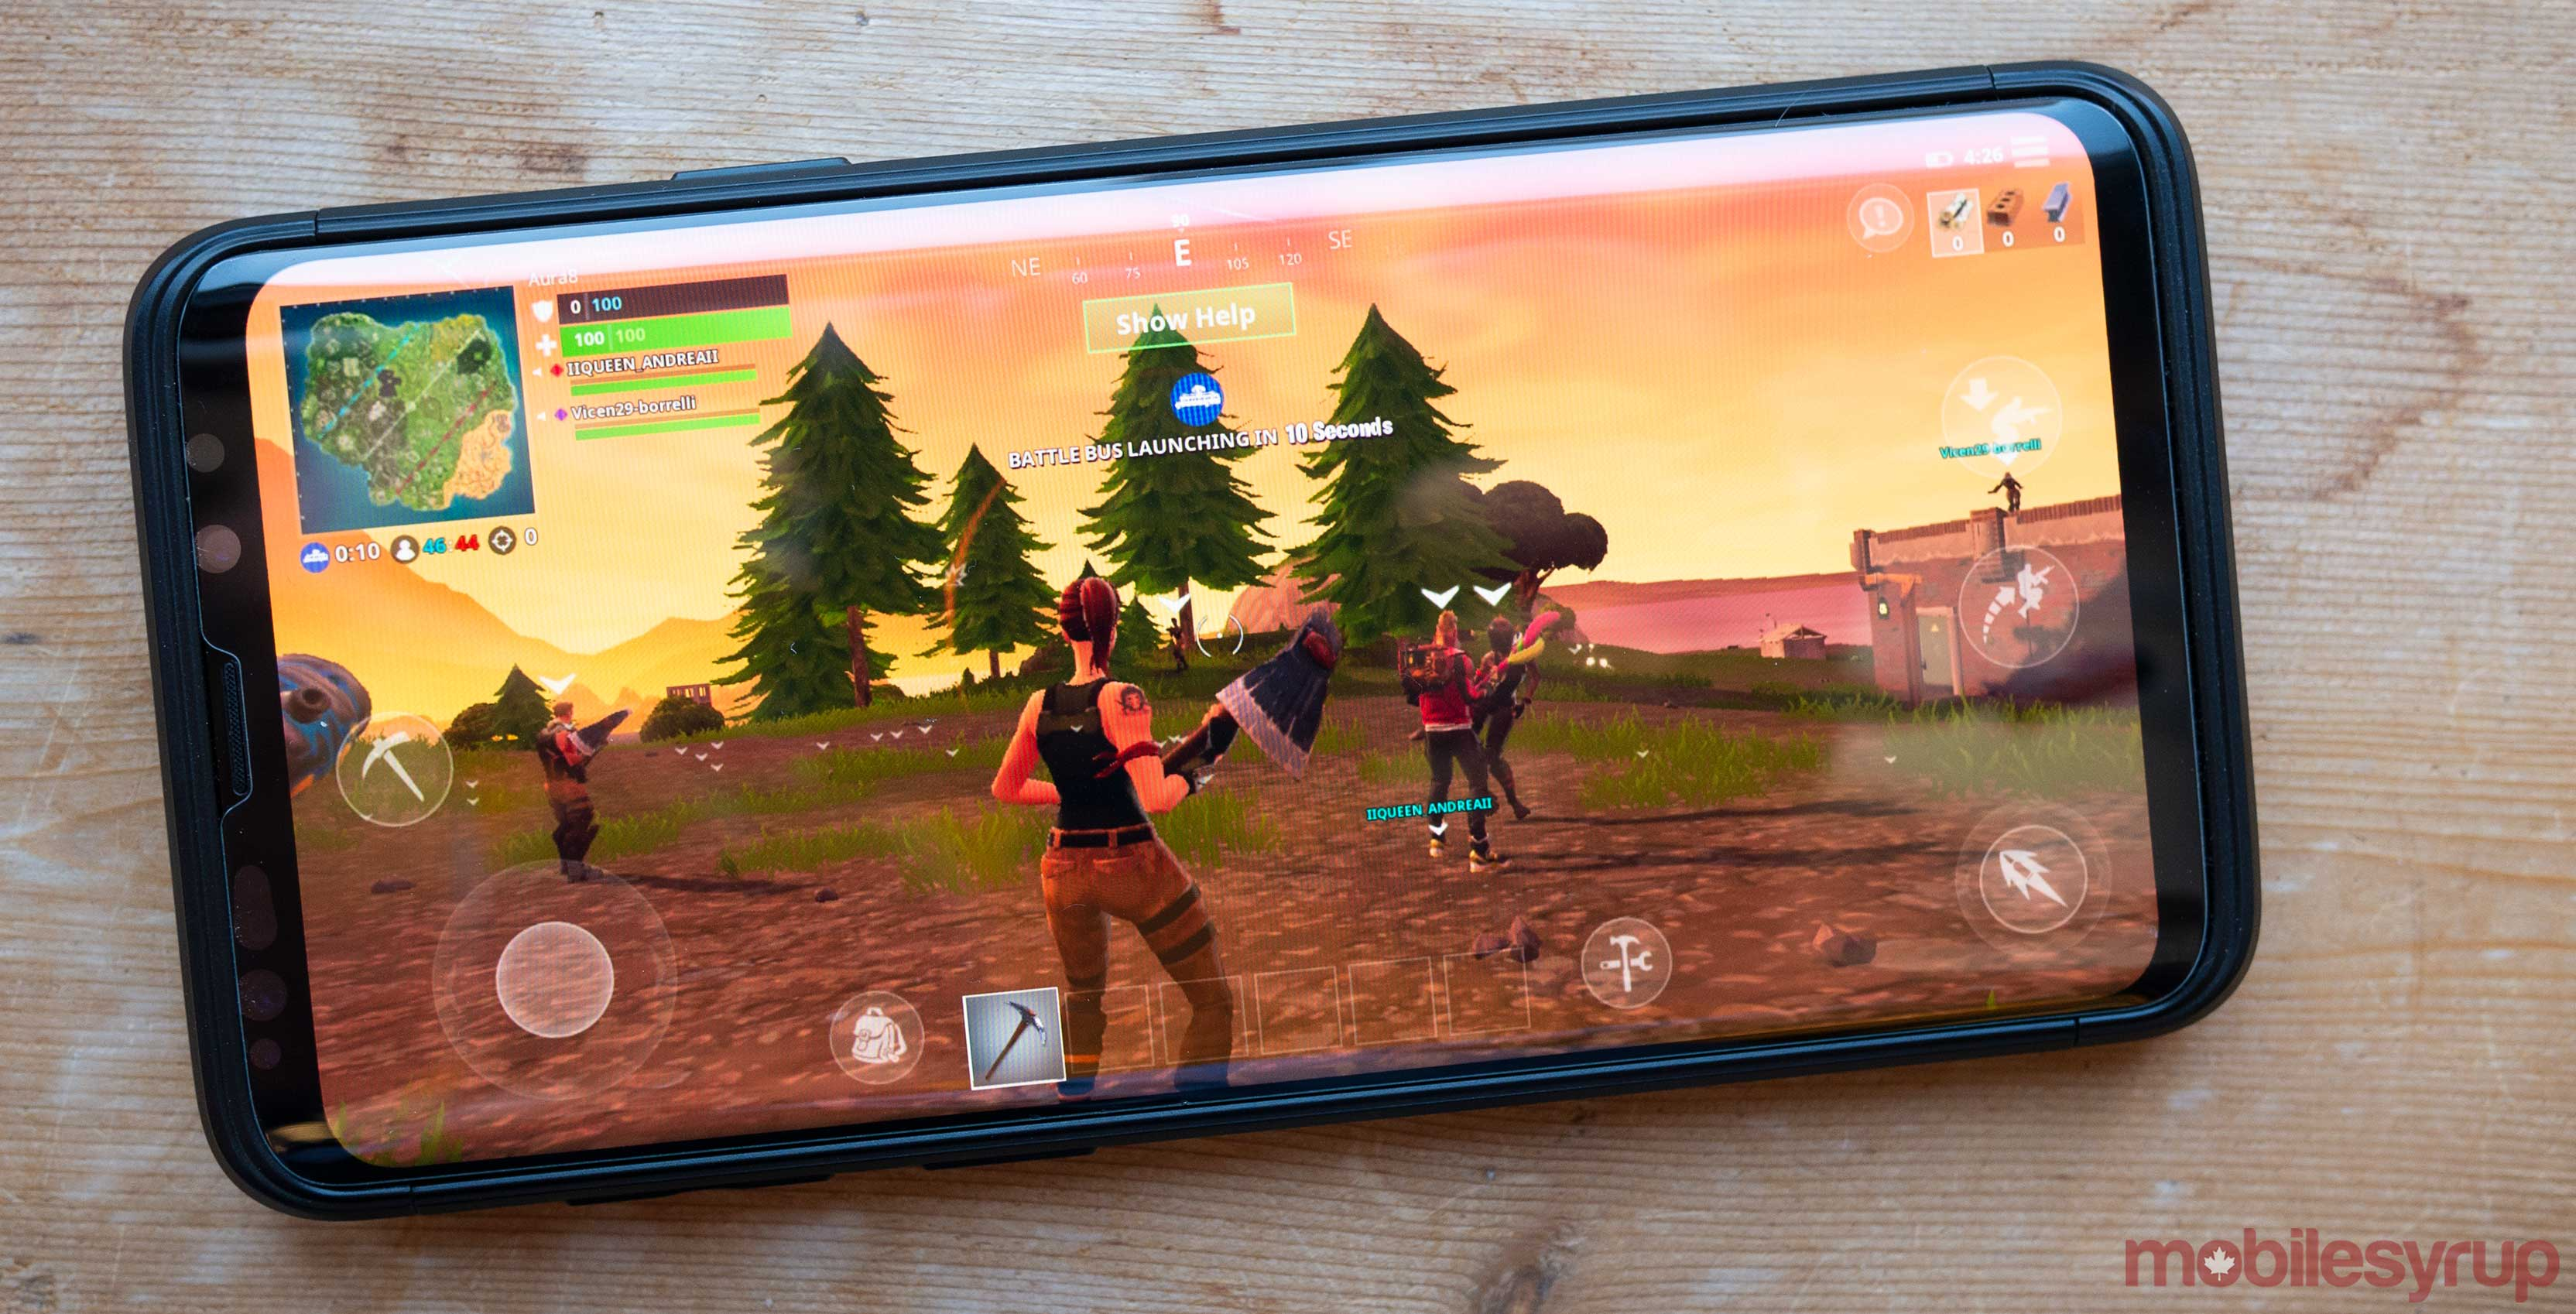 Epic Games has plans to launch its own Android game store in